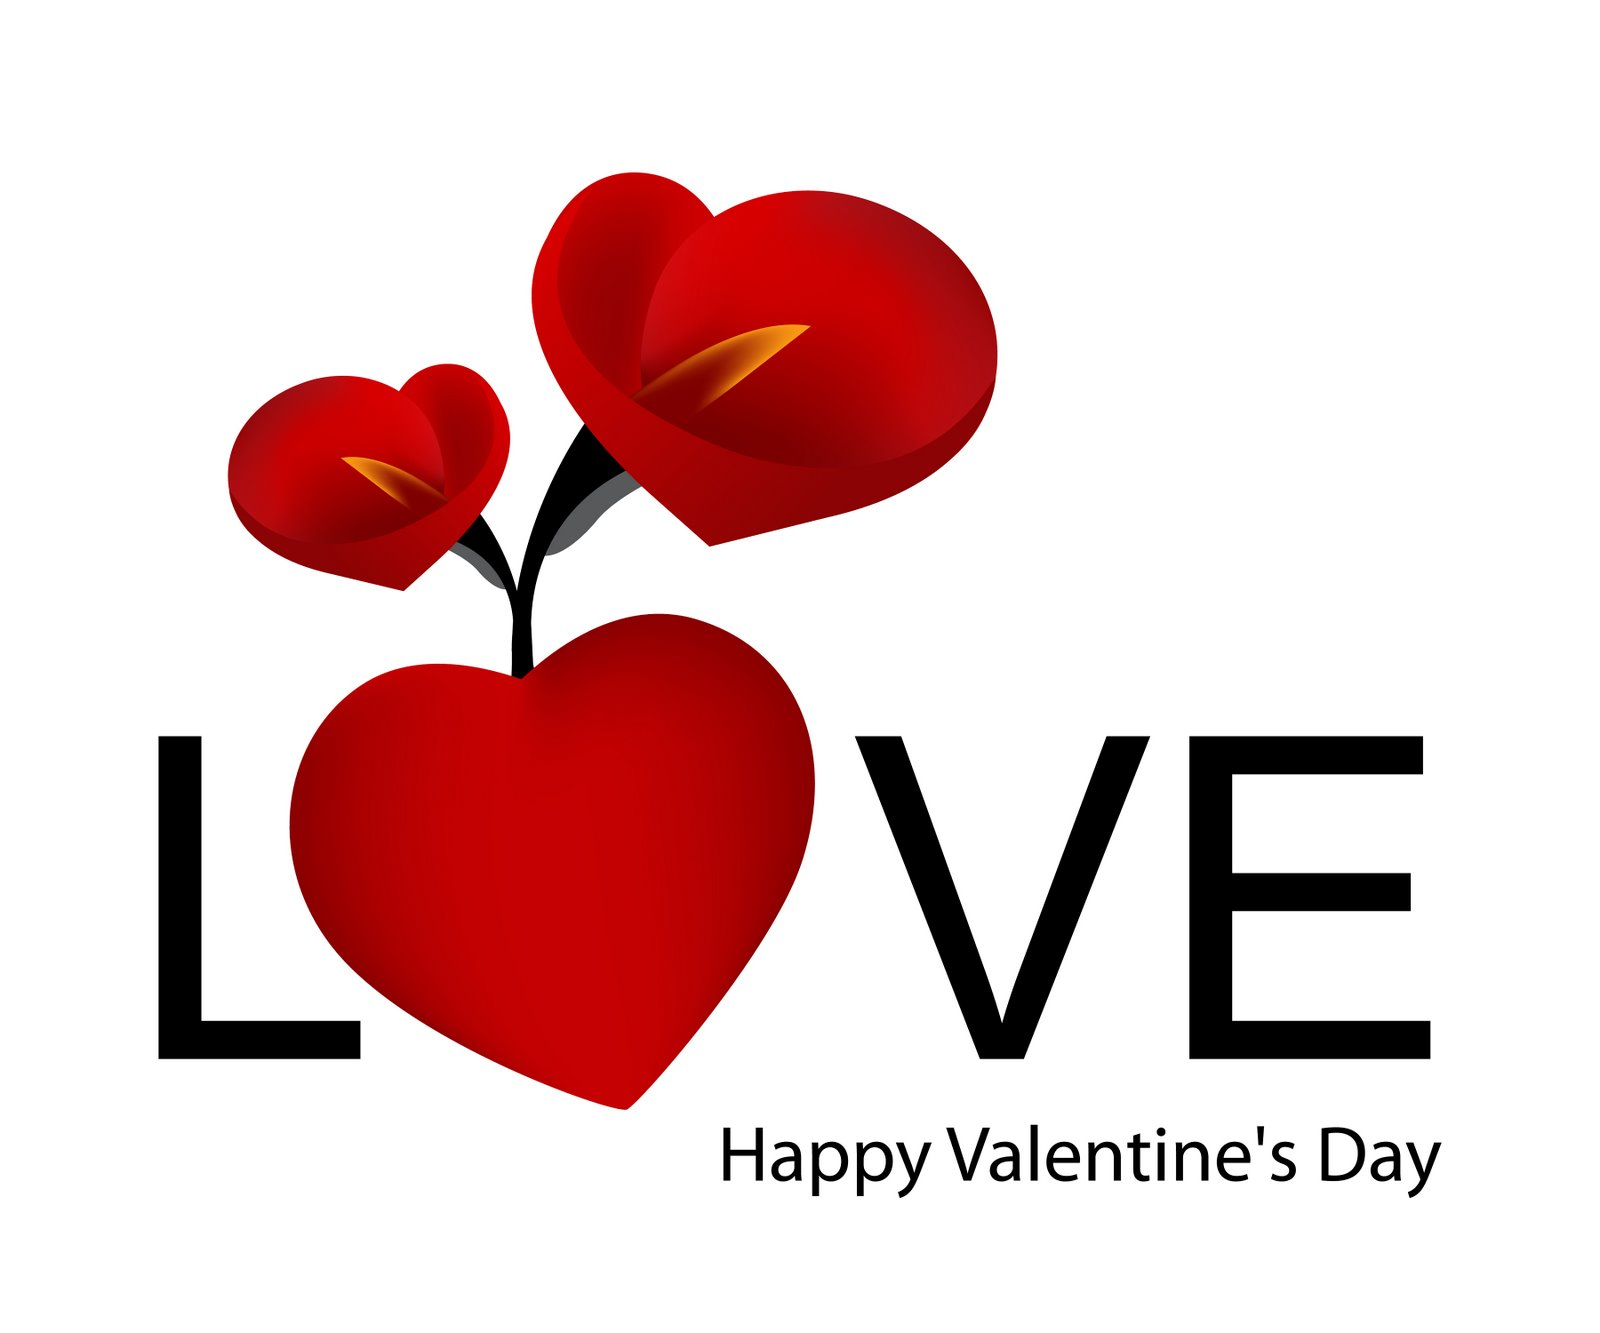 Valentines day wishing quotes with beautiful red flowers flowers special valentines day wishing quotes wallpaper are here for lovers a collection of beautiful red flowers with nice quotes about valentines day 2012 izmirmasajfo